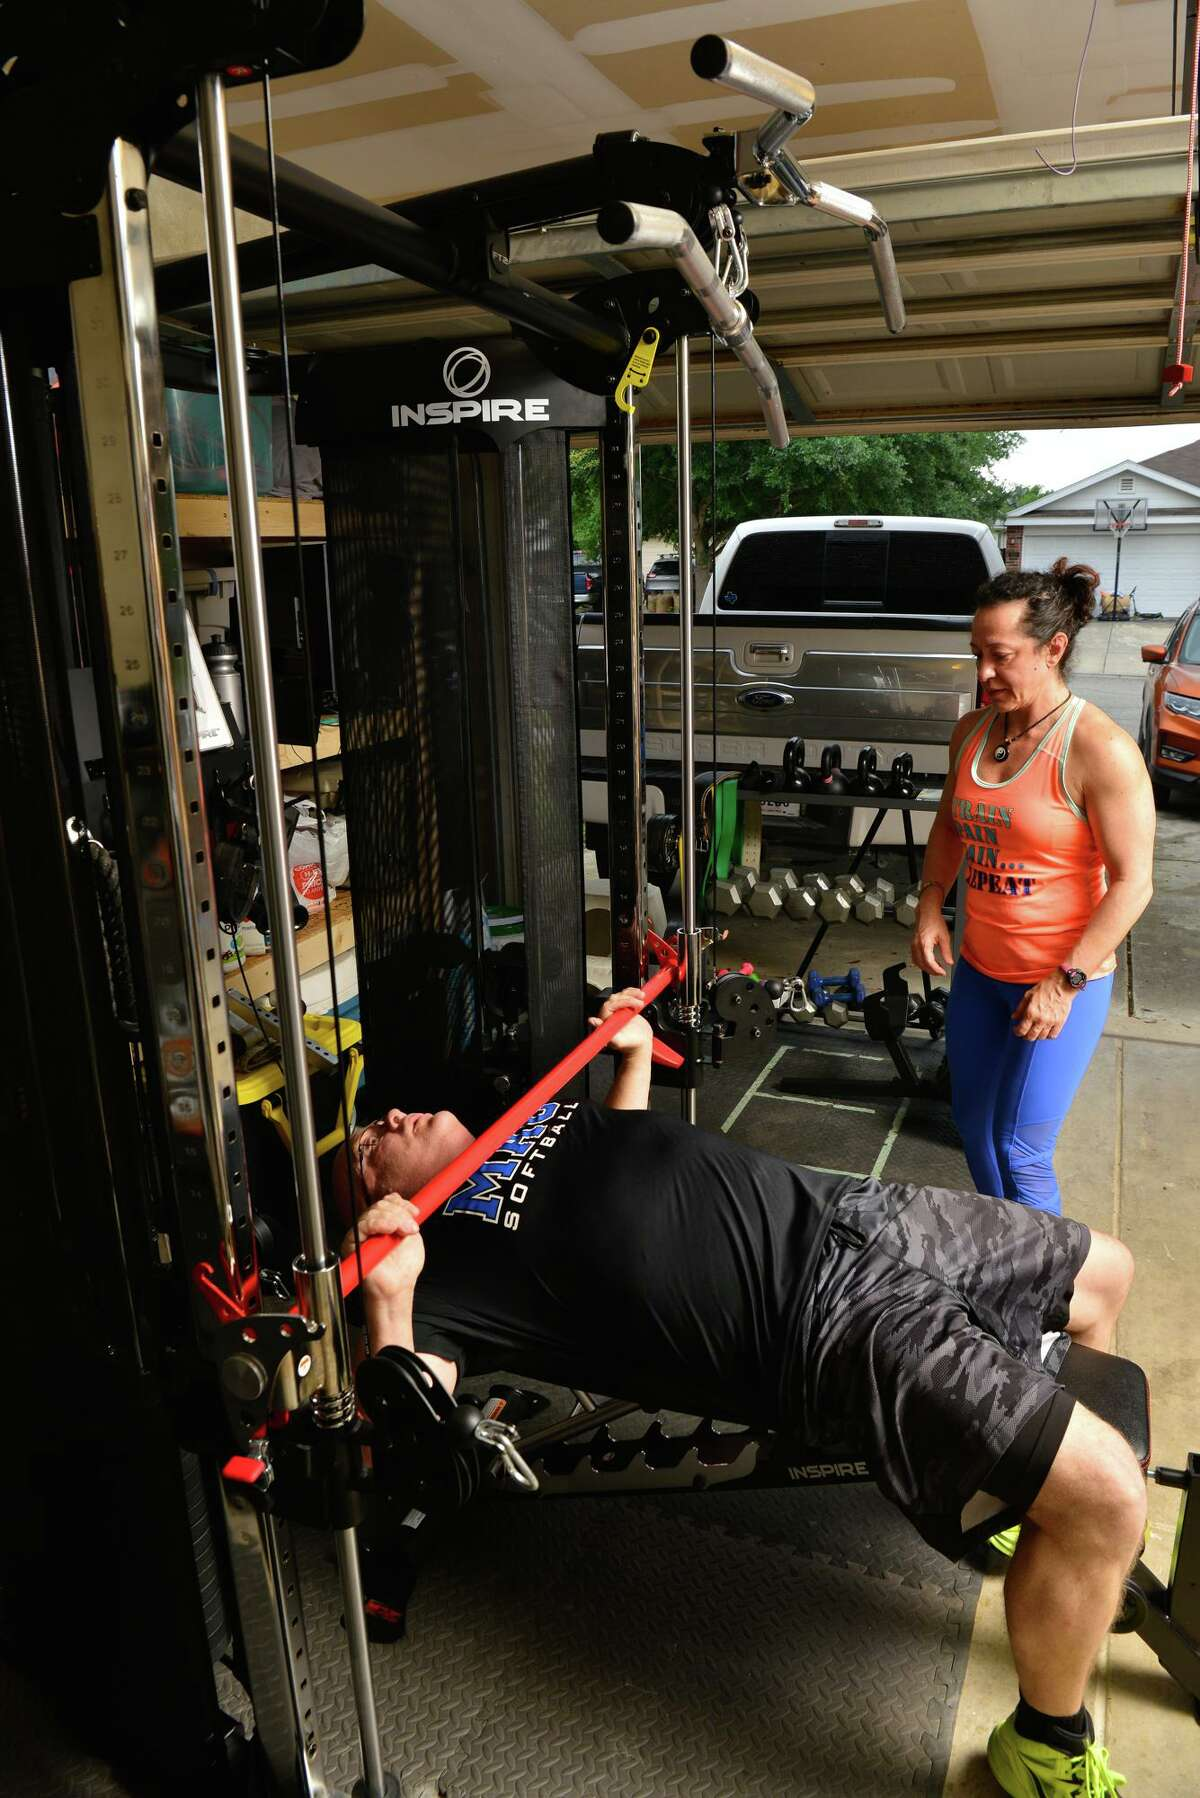 Cristina Cobal watches as her husband Kevin works out on their new functional training machine inside their New Braunfels garage.